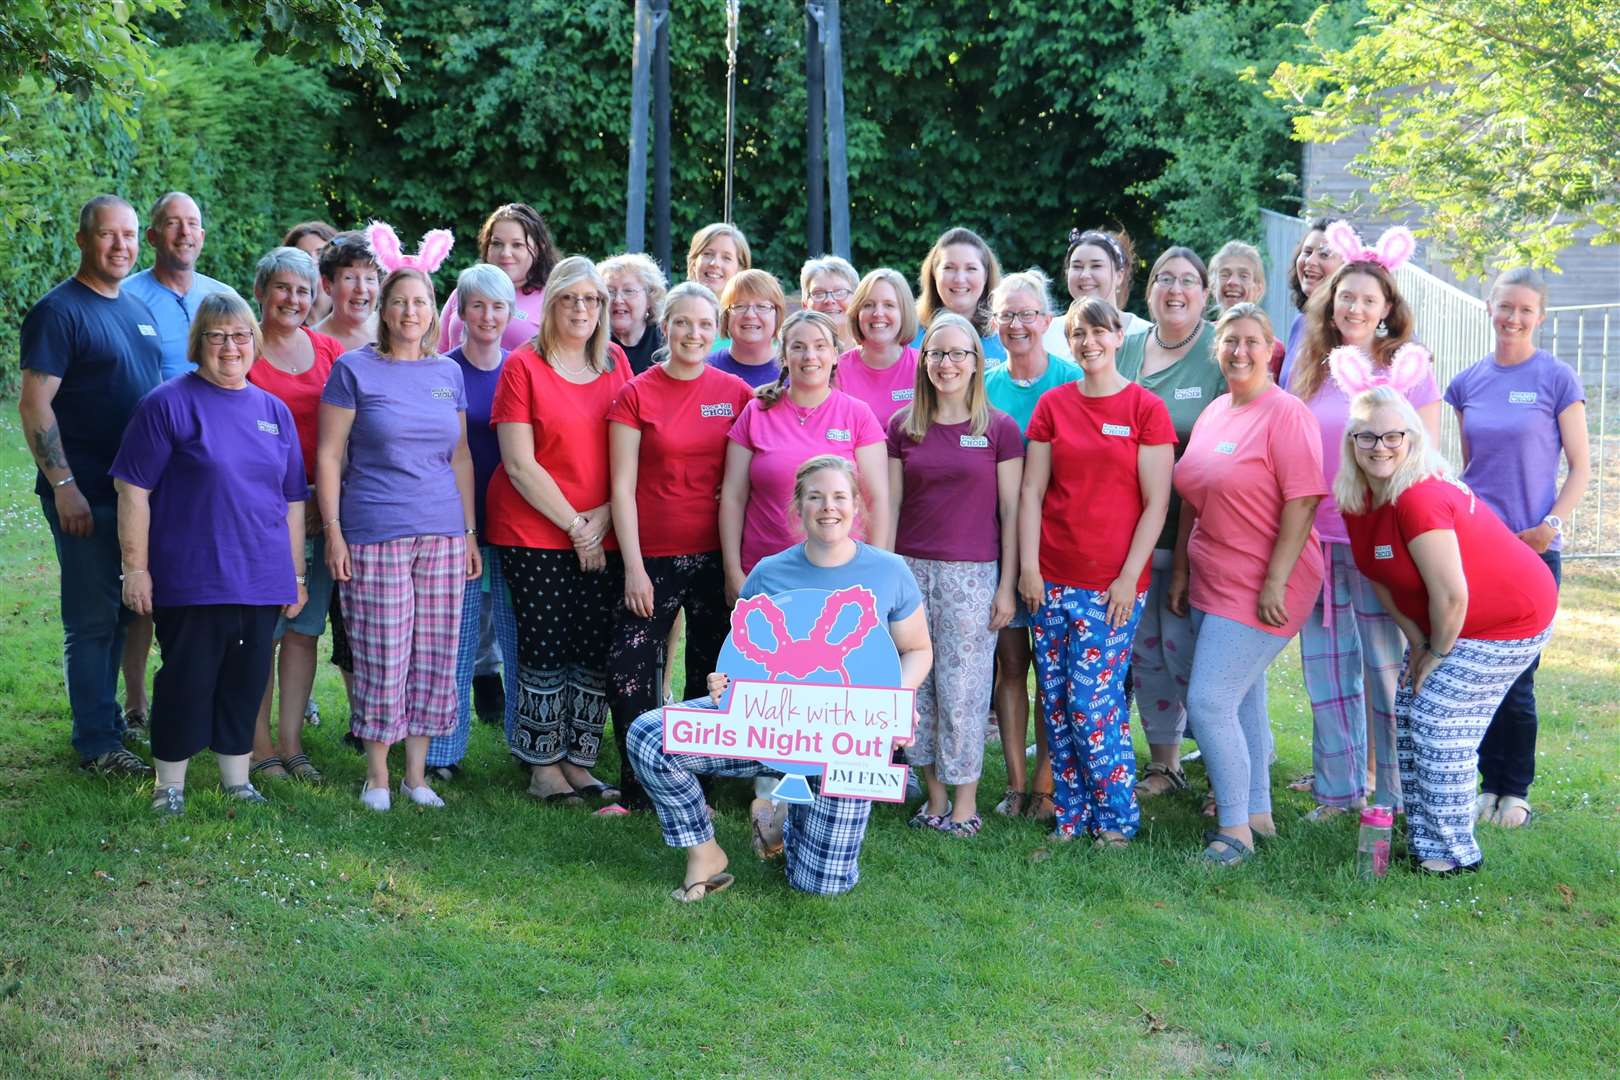 The Rock Vox Choir will be lending their voices to support Girls Night Out 2018 on Saturday, September 8 when thousands of women will don pyjamas and flashing bunny ears to walk 11.2 or six miles around Bury St Edmunds - the event is sponsored by JM Finn & Co (2921888)